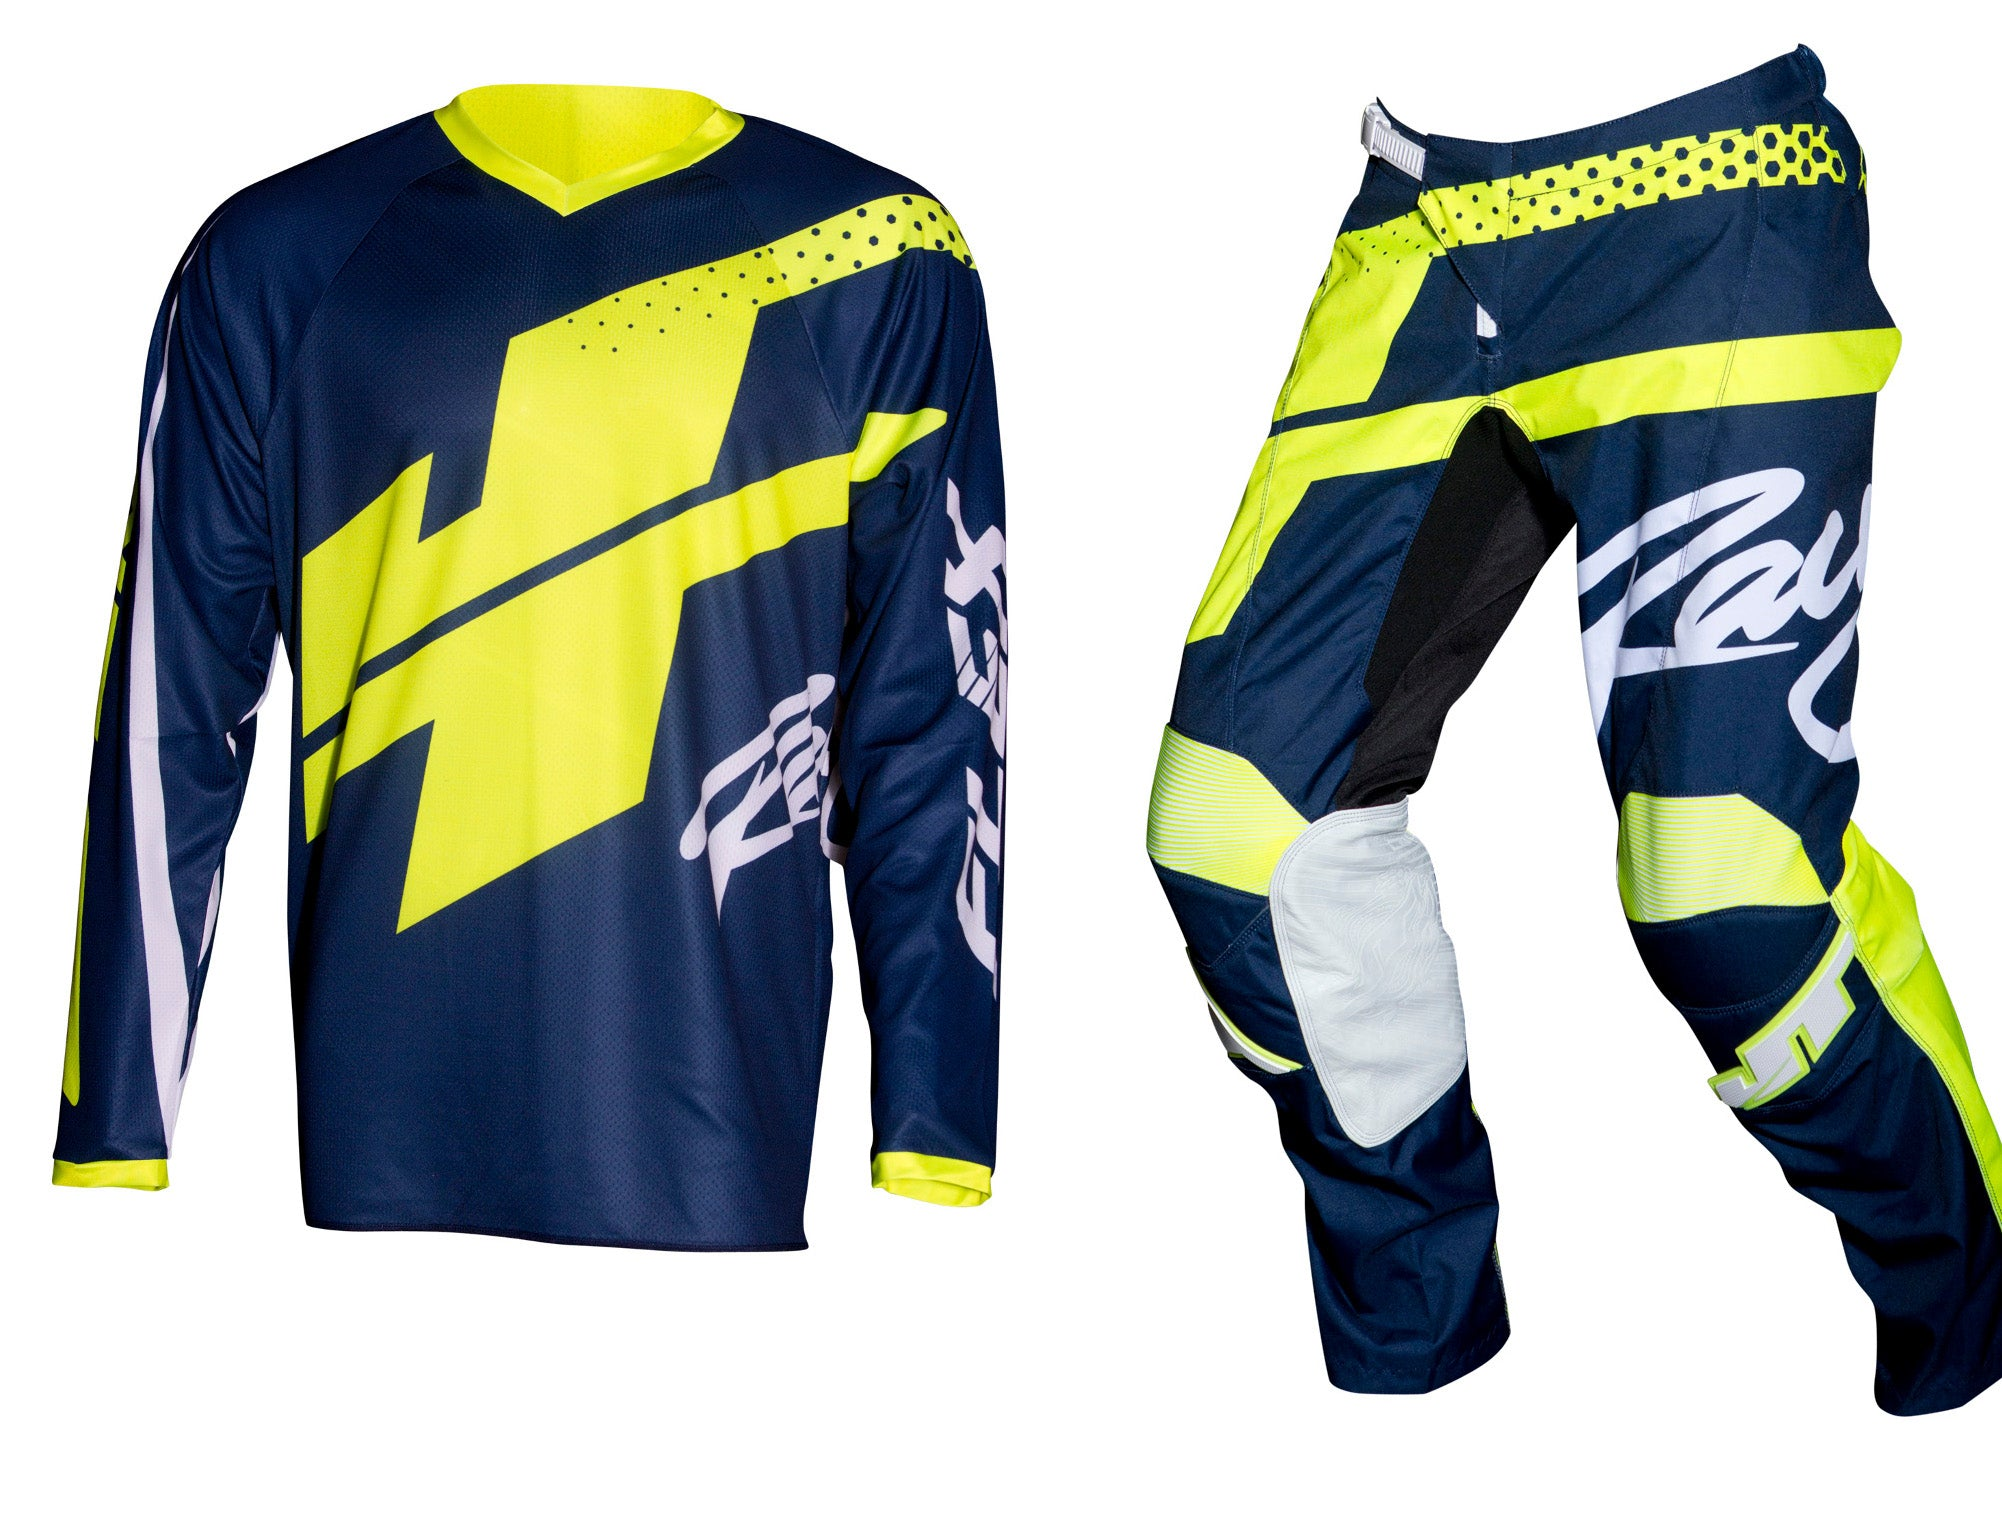 JT RACING USA-Flex-ExBox Jersey, Navy/Neon Yellow